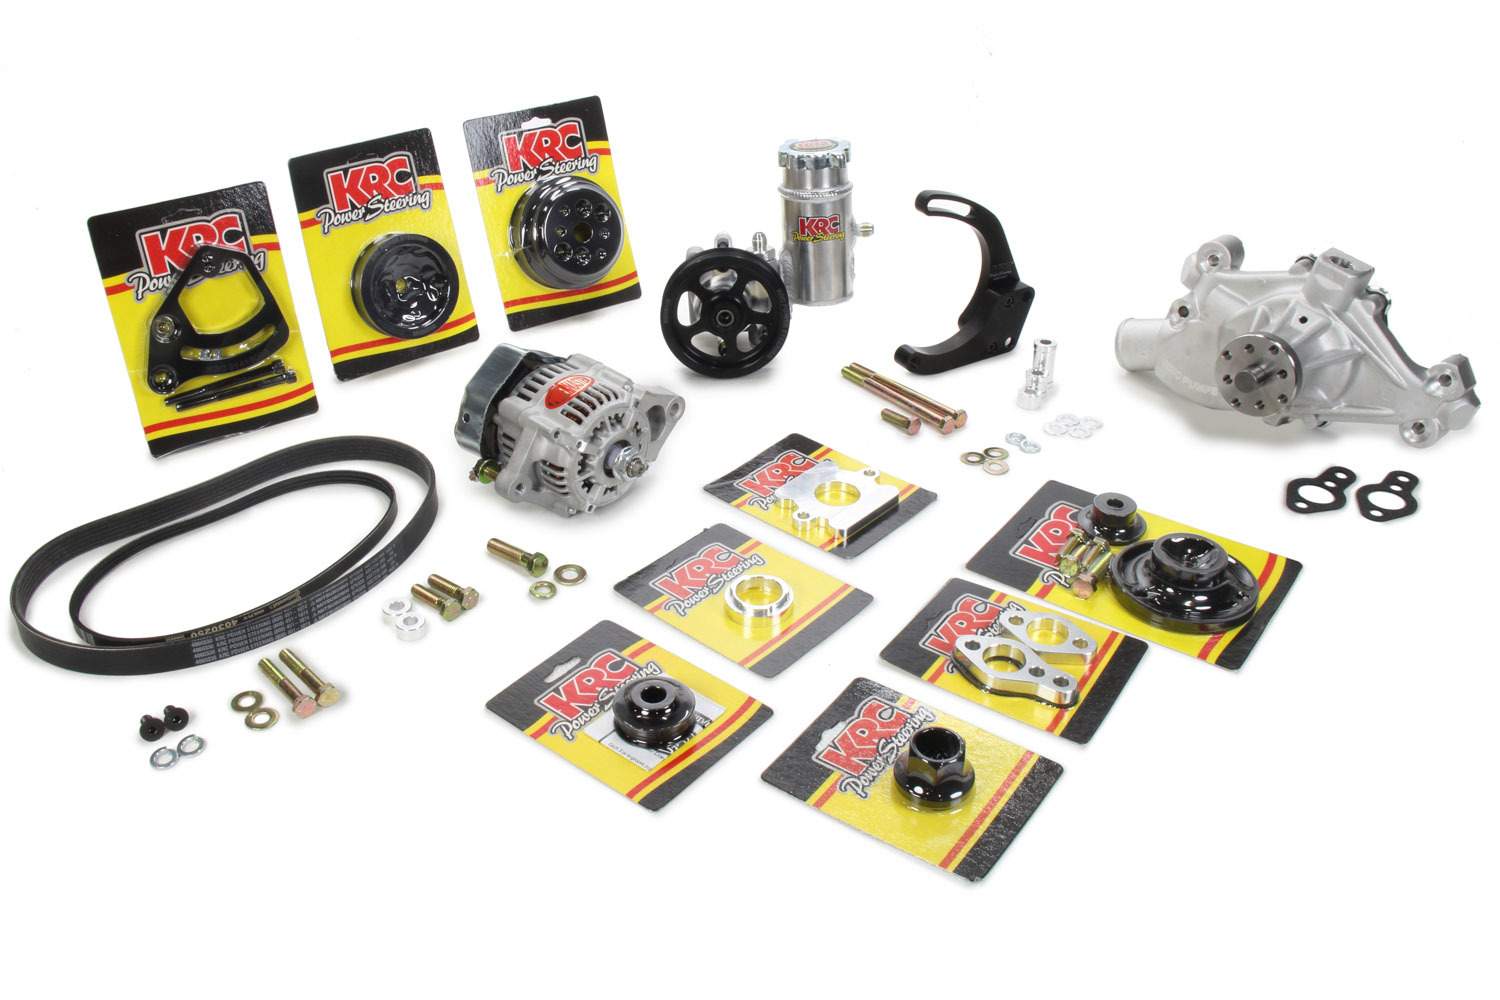 KRC Power Steering KIT16612122 Pulley Kit, Pro Series, 3 and 6 Rib Serpentine, Block Mount PS Pump / Denso Alternator / Hardware / PS Tank / Water Pump Included, Aluminum, Black Anodized, Small Block Chevy, Kit